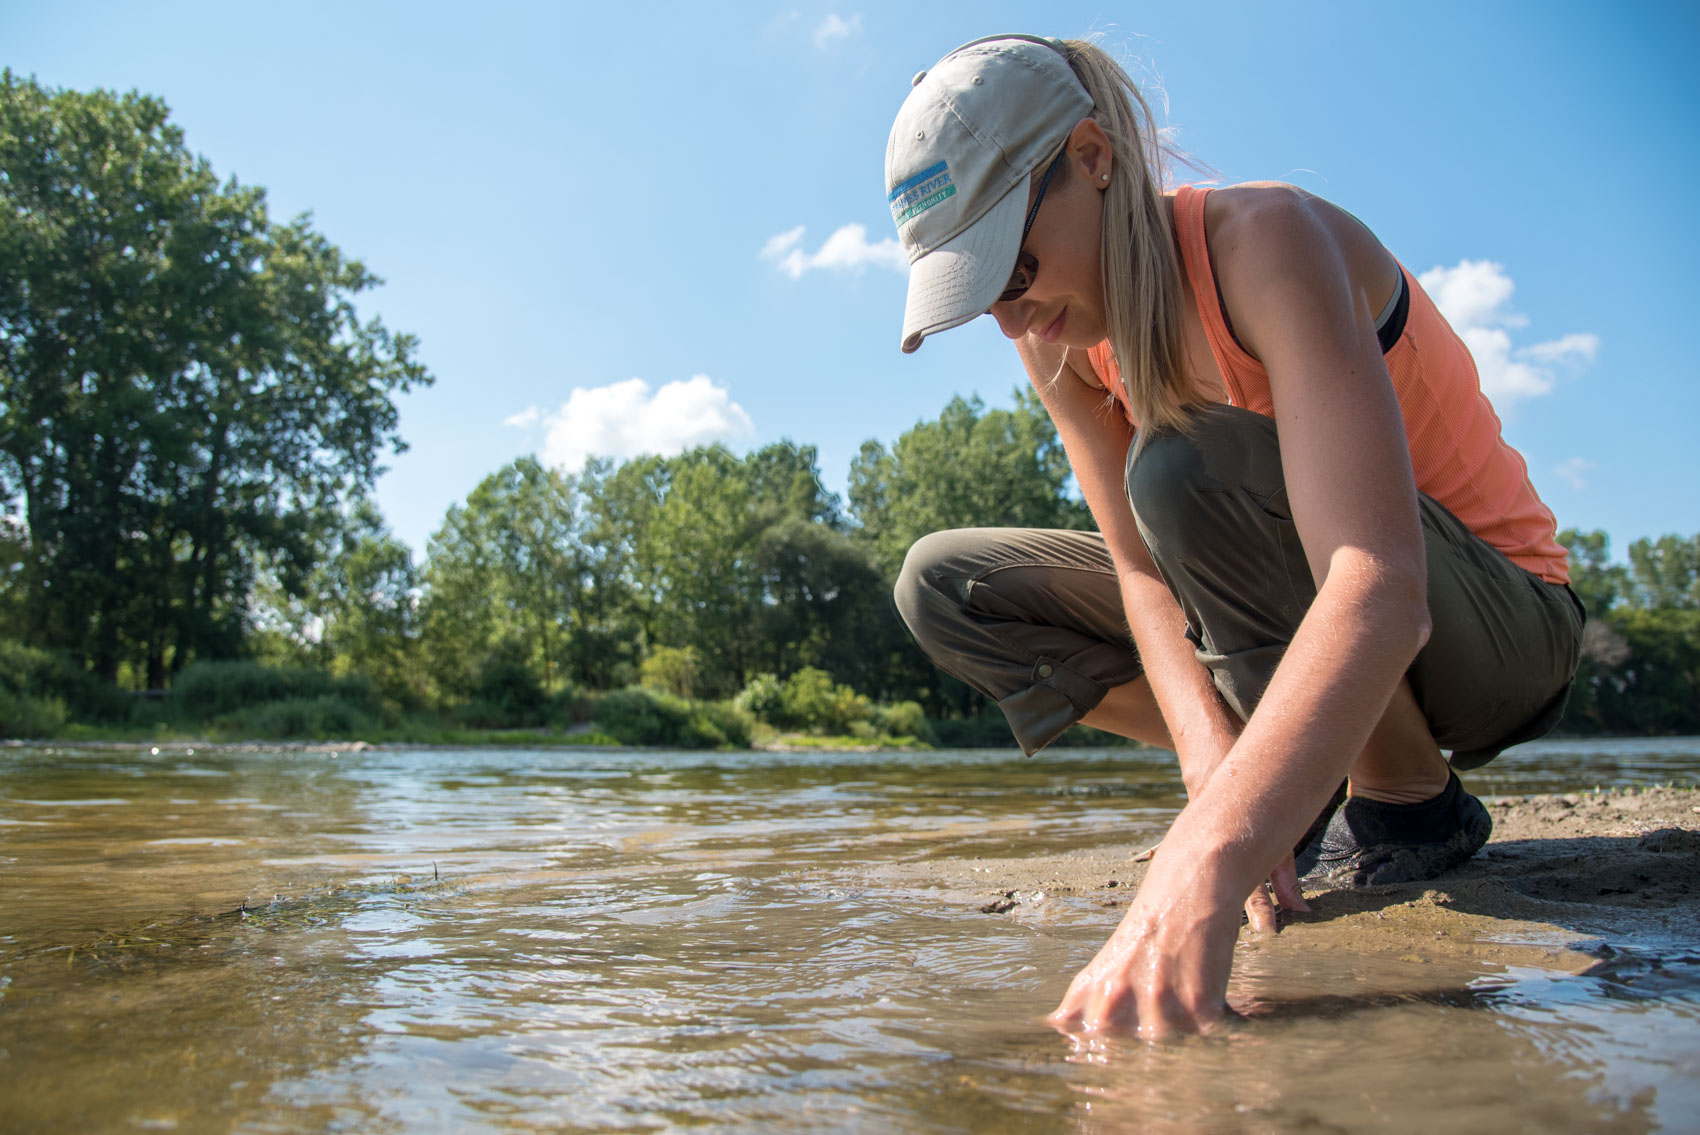 Research assistant sticking hands in river sand to check for turtles in the Upper Thames River